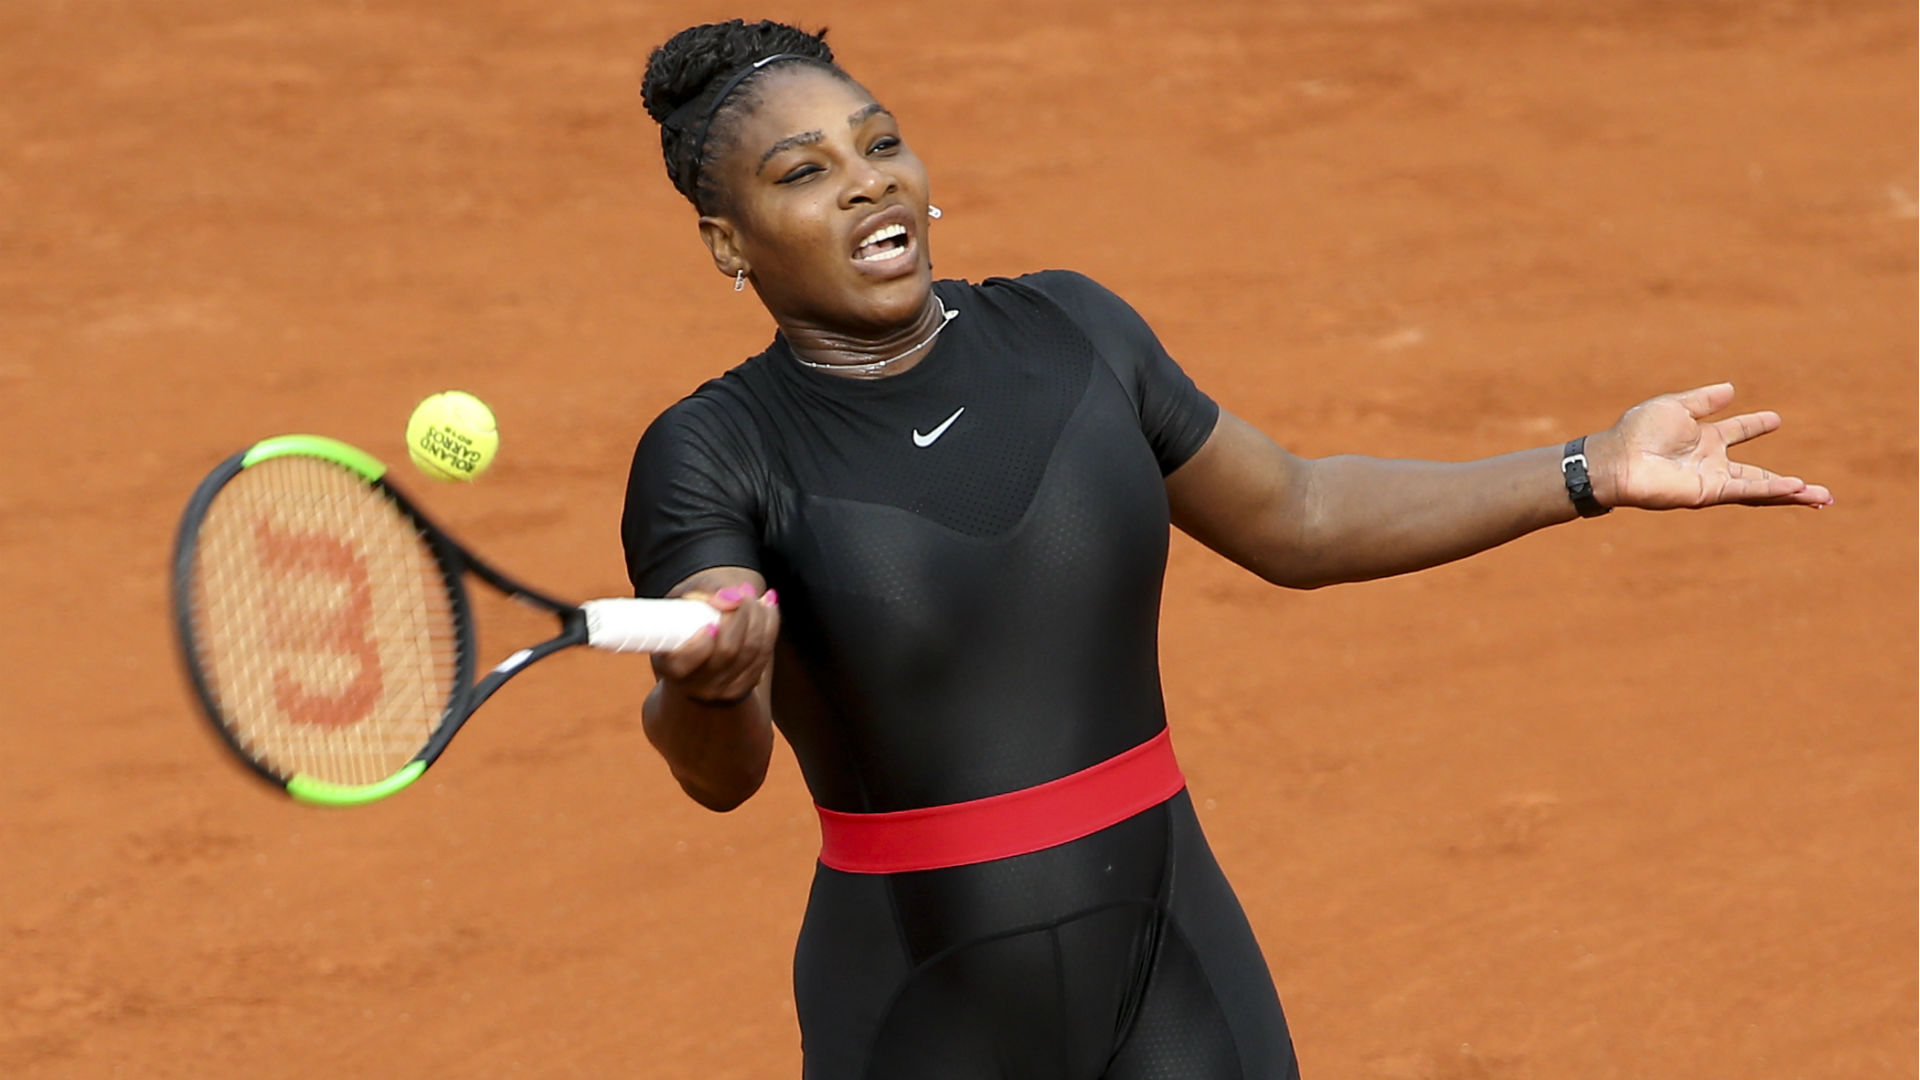 Serena Williams Wins First Grand Slam Tennis Match Since Giving Birth